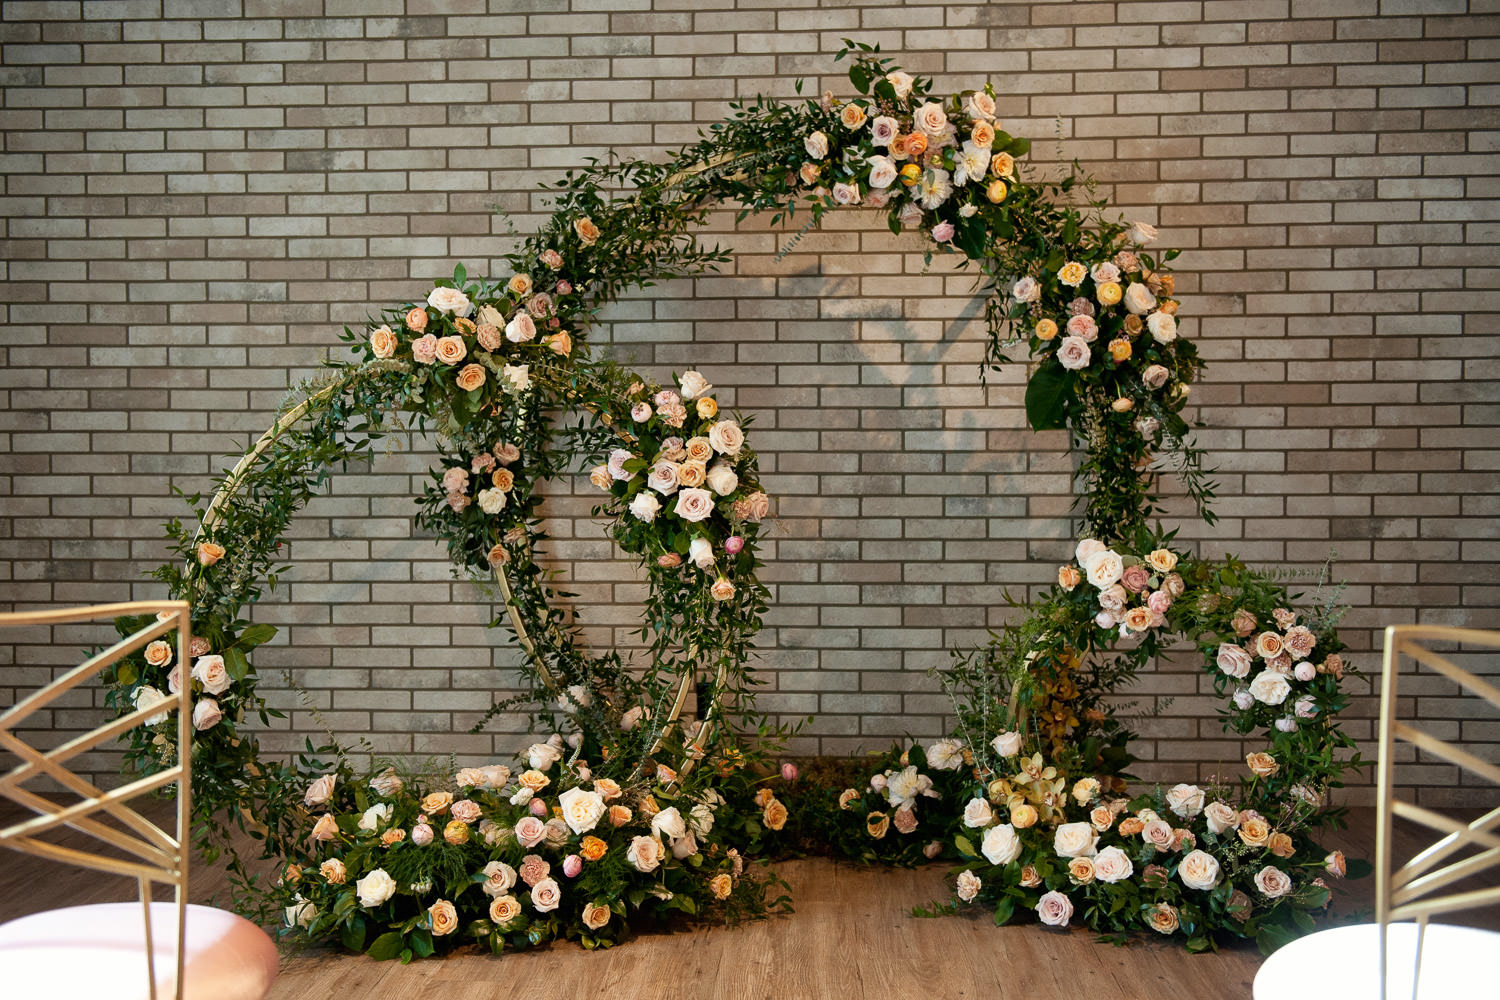 Circular ceremony arches from Flowers by Janie captured by Tara Whittaker Photography